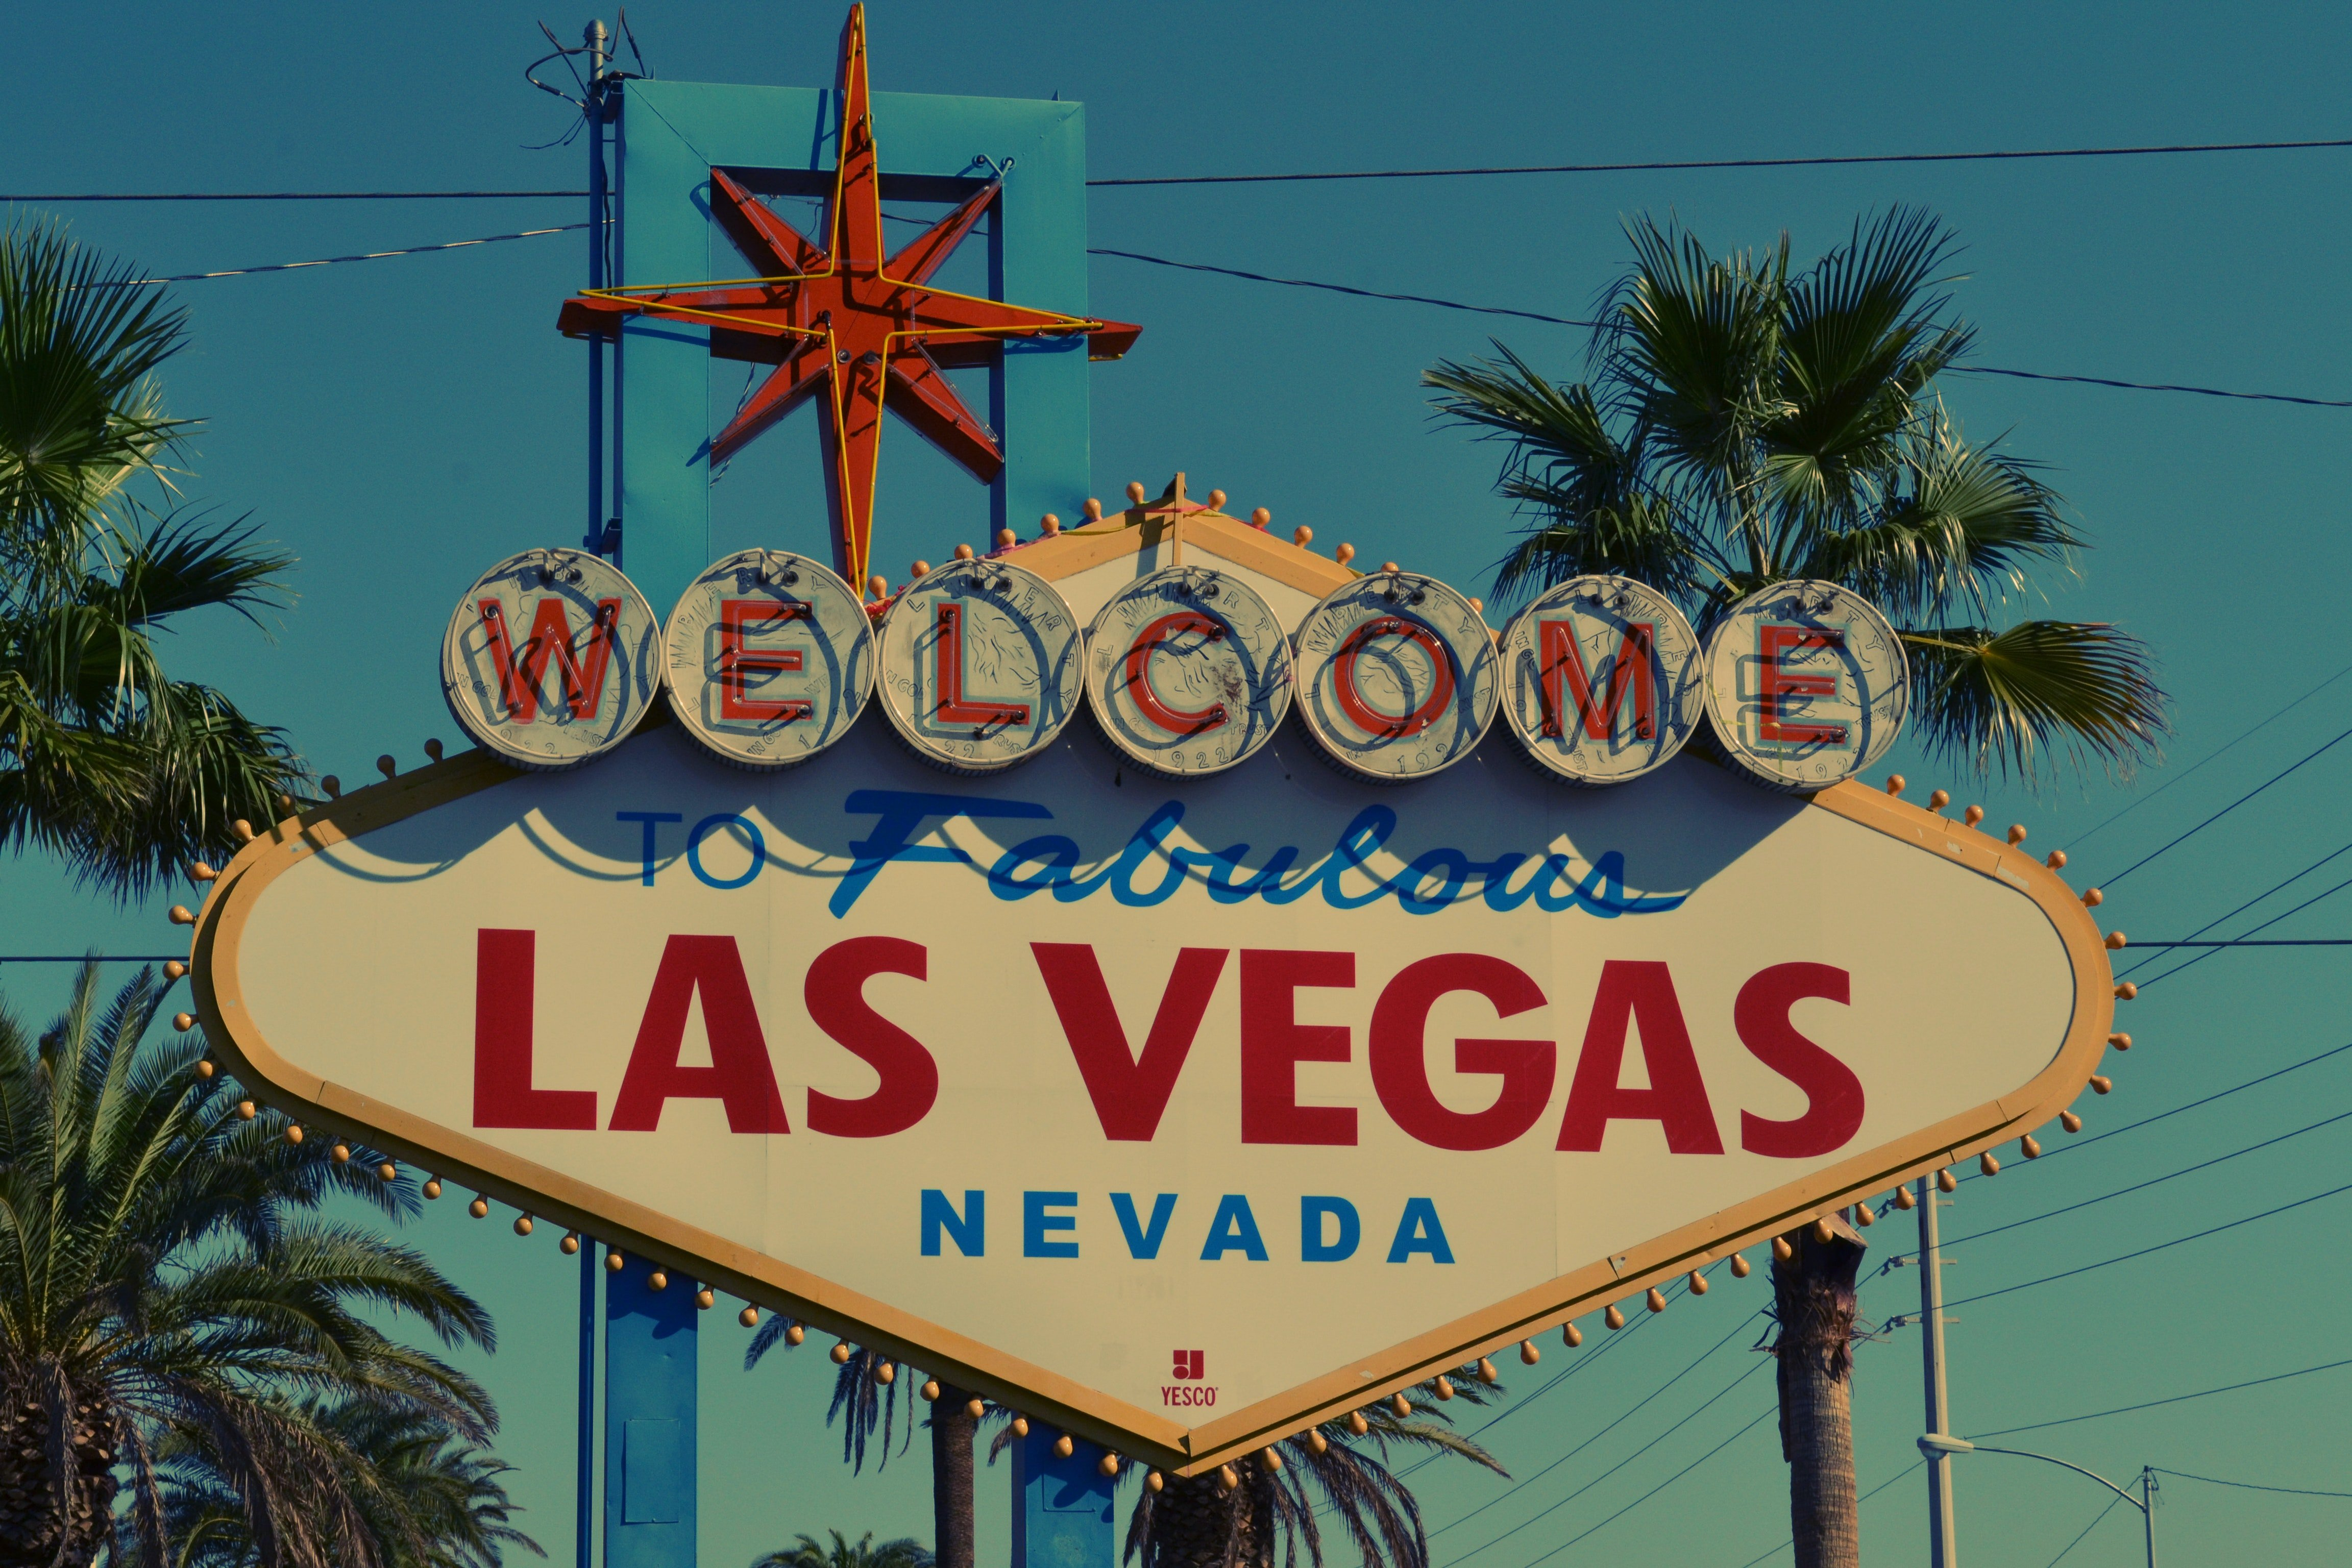 A welcome to Las Vegas sign | Photo: Pixabay